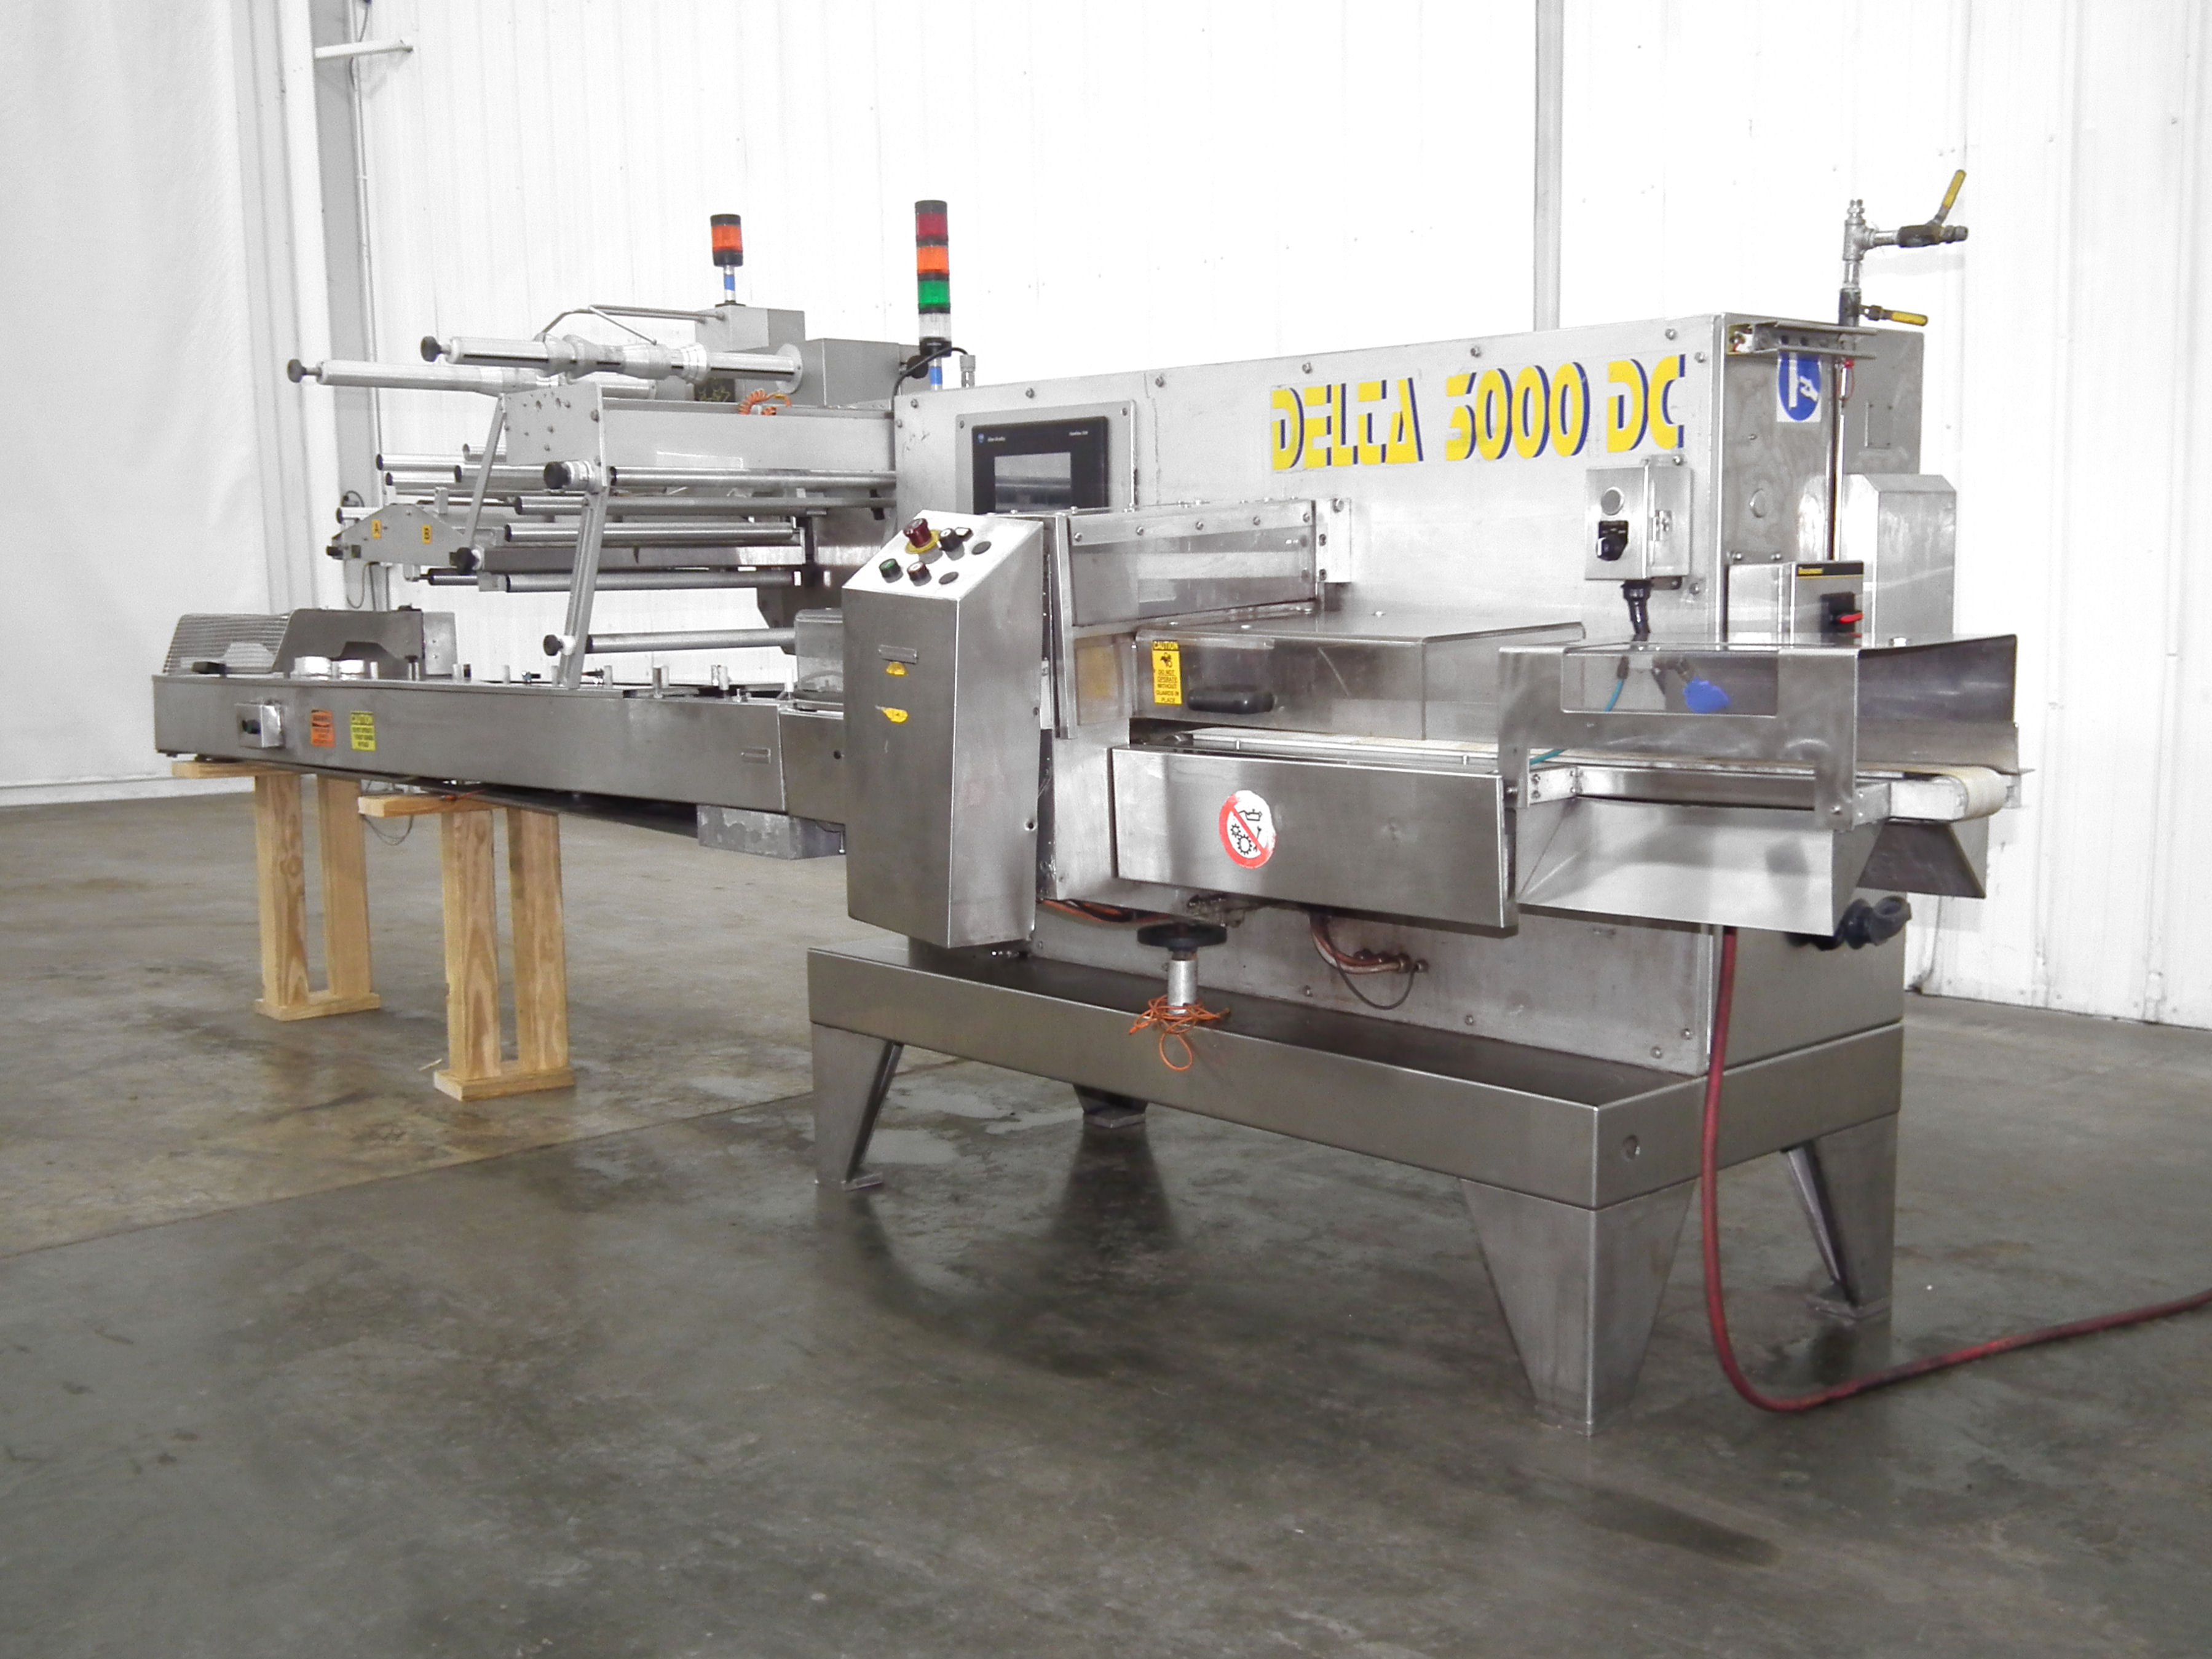 Ilapak Delta 3000 DC Stainless Wrapper B4826 - Image 2 of 9